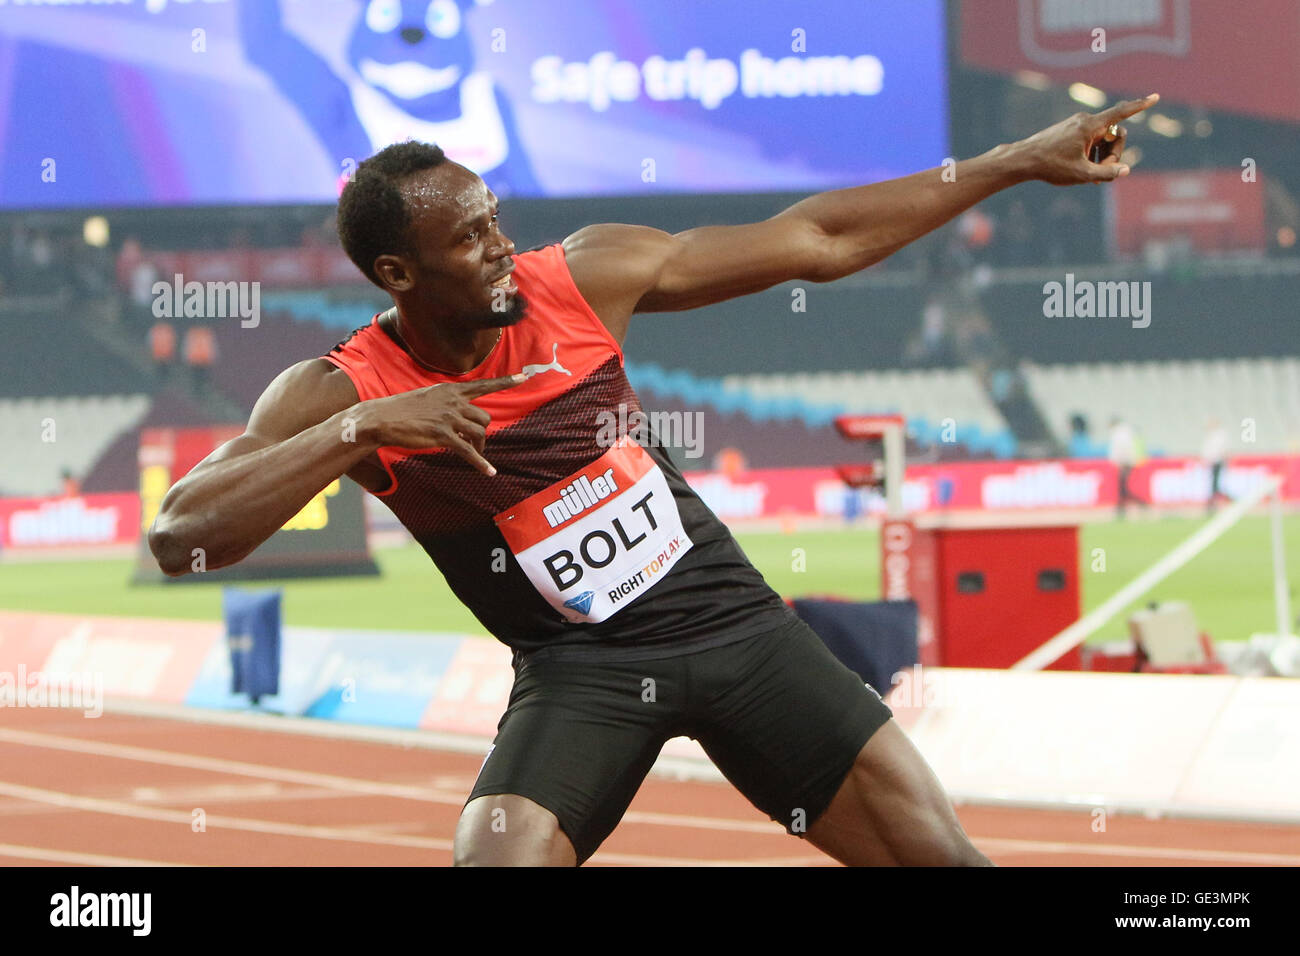 London, UK. 22nd July, 2016. IAAF Diamond League Anniversary Games.Usain Bolt Celebrates taking first place in the - Stock Image